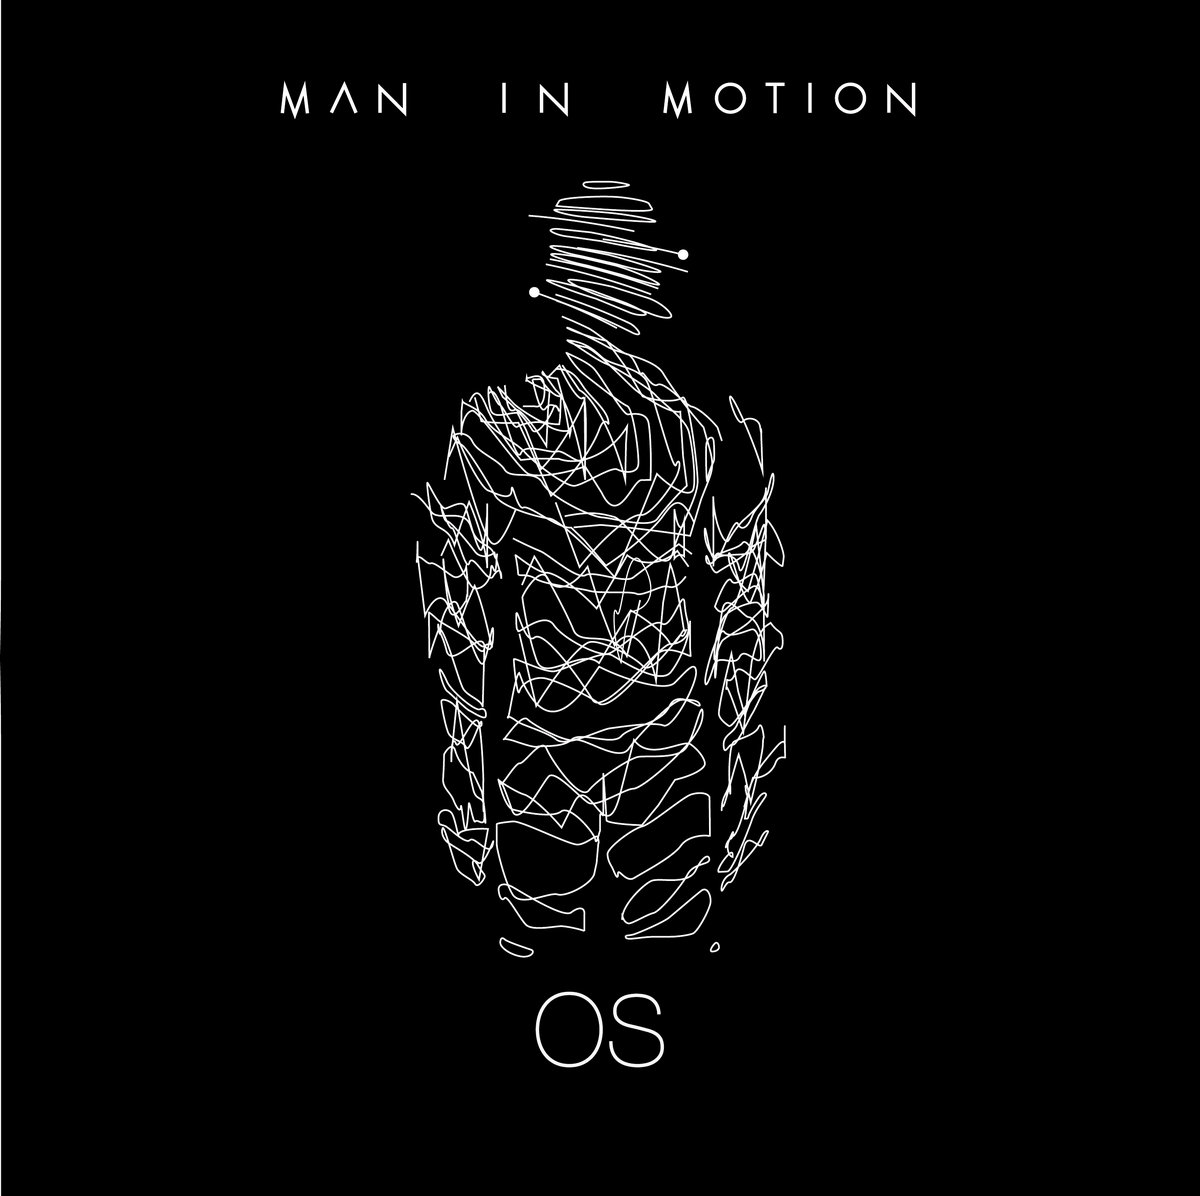 By man in motion